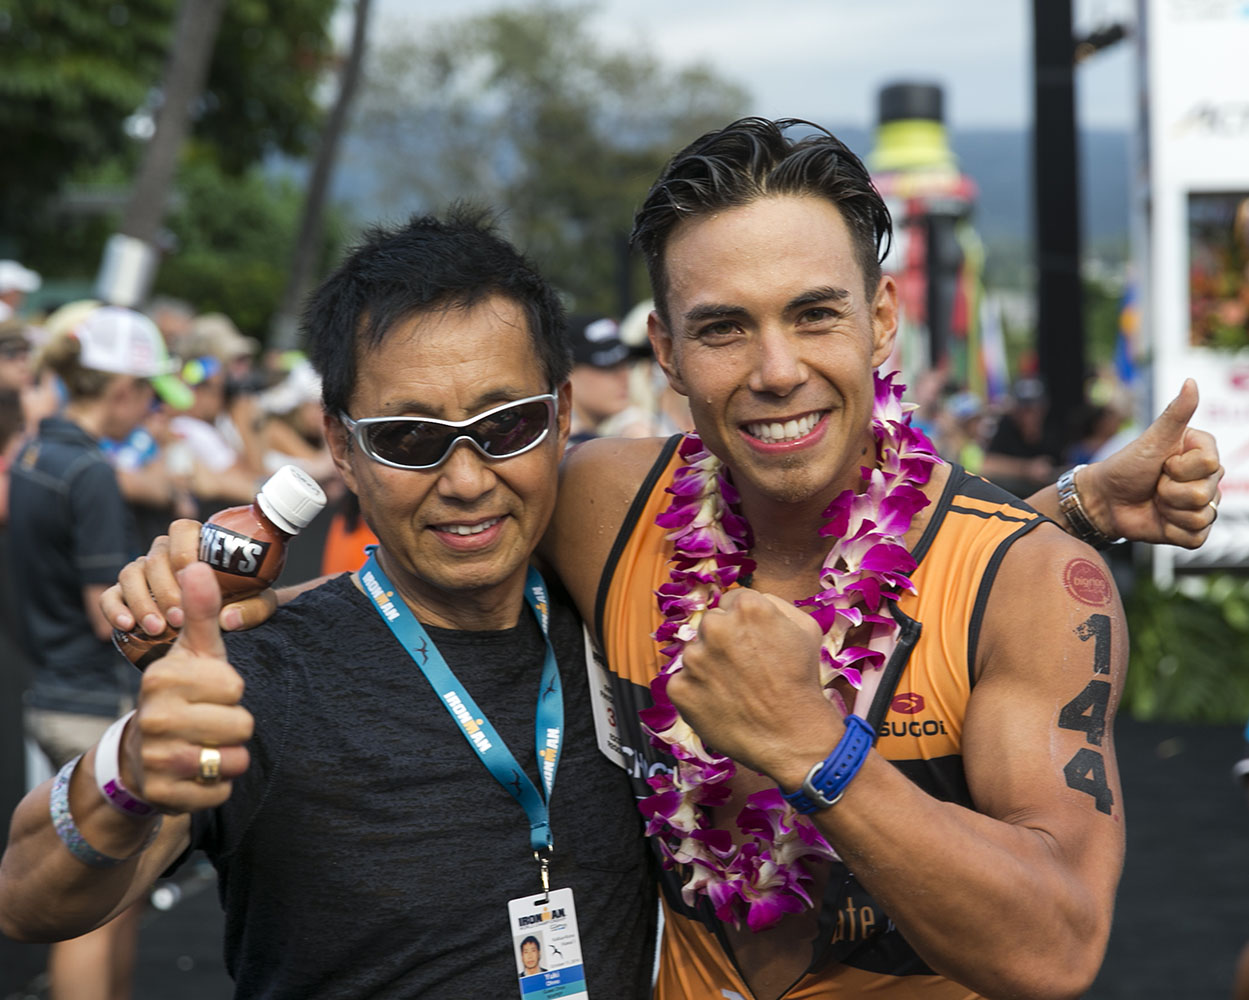 Former Olympian Apollo Ohno, right, poses with his father, Yuki Ohno after Apollo finished the 2014 IRONMAN World Championship.